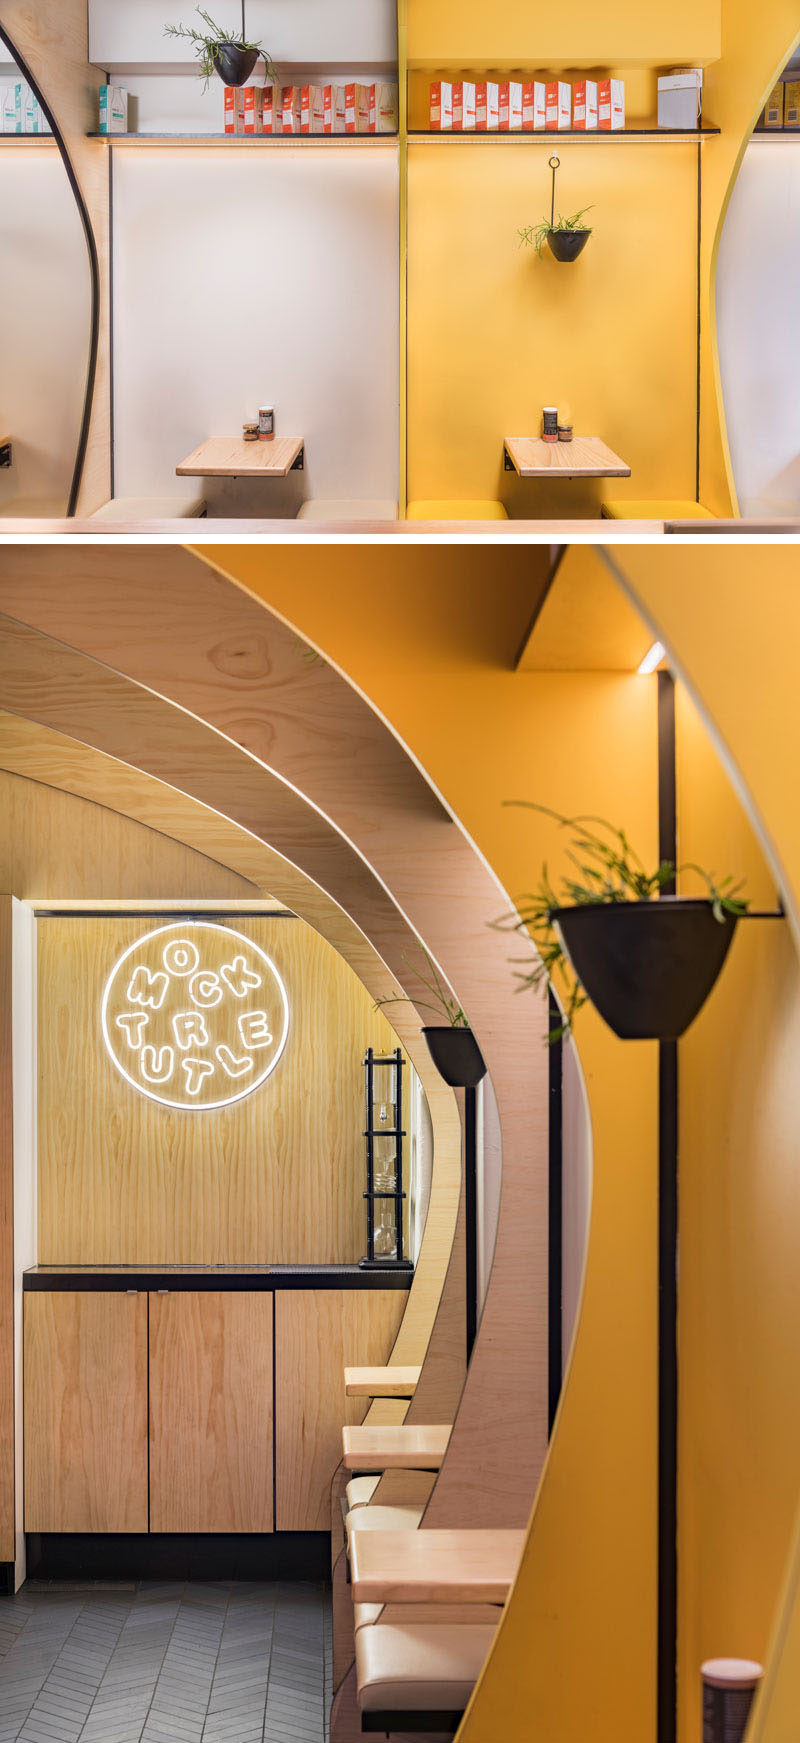 This modern cafe has signature colors of yellow and black that have been combined with wood and white to create a unique and fun interior, that brightens up the small space, and draws people inside. #CafeInterior #CafeDesign #InteriorDesign